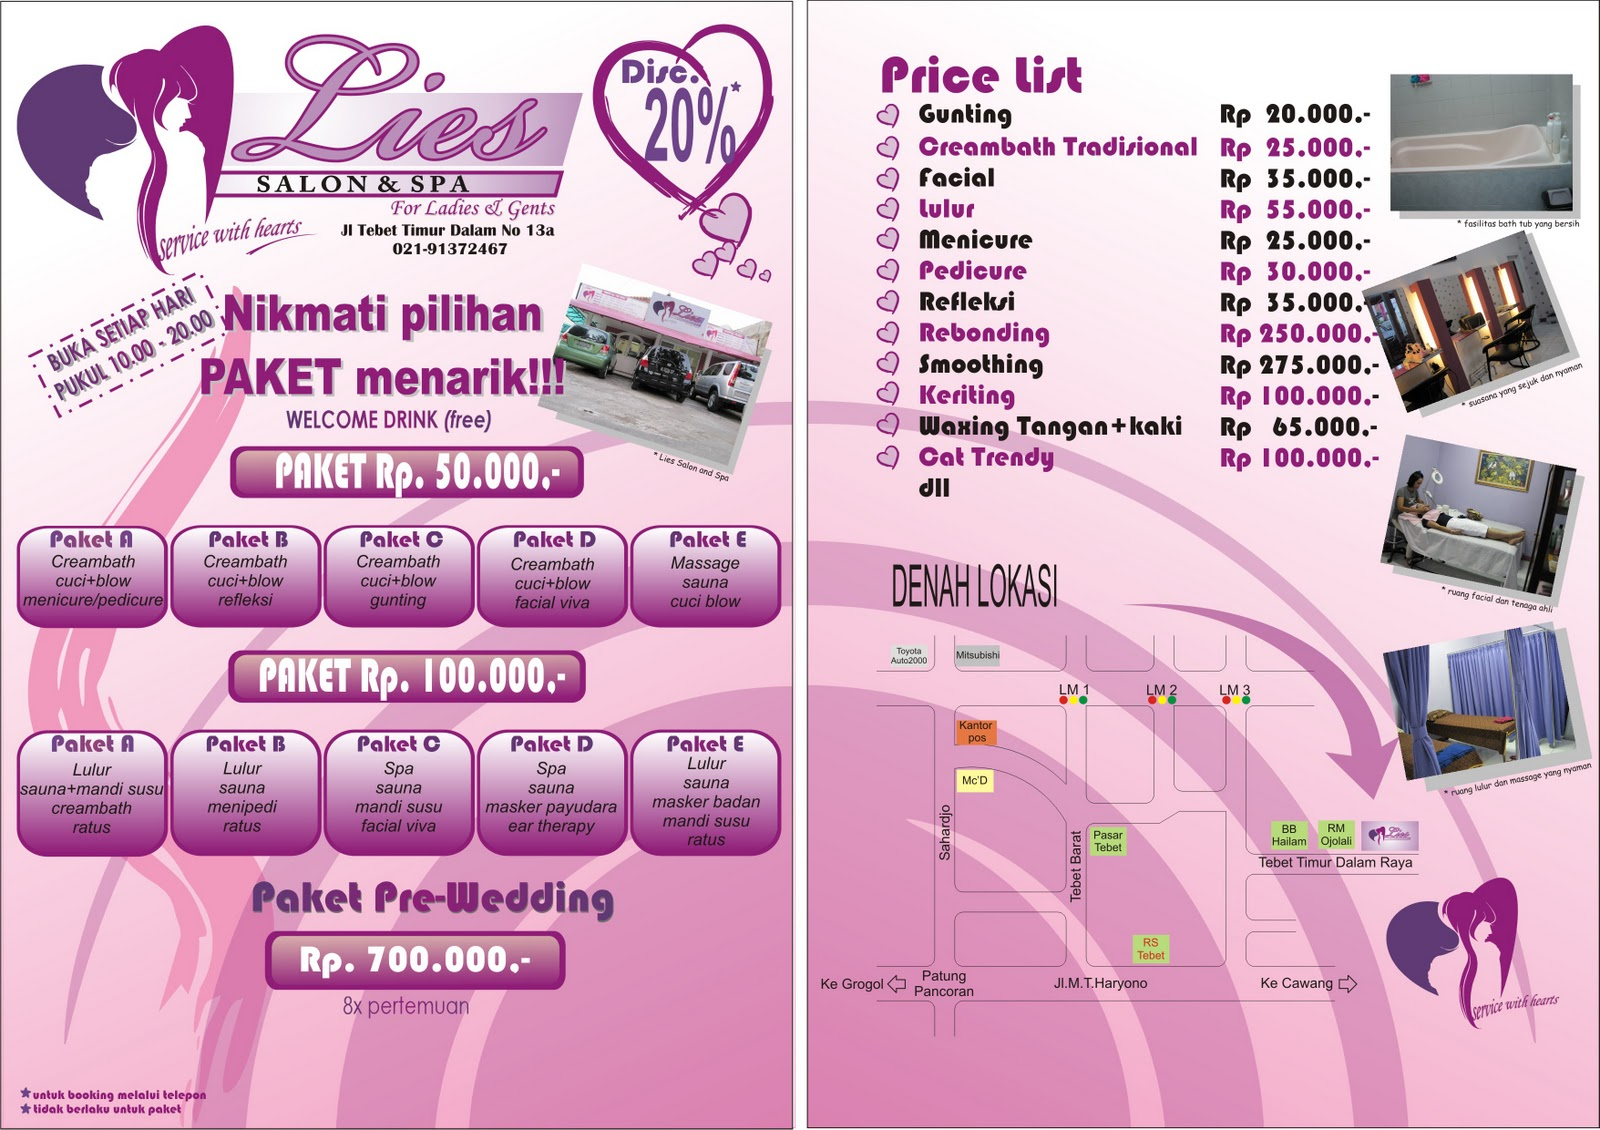 LIES SALON AND SPA (PAKET PERAWATAN PREWEDDING MURAH